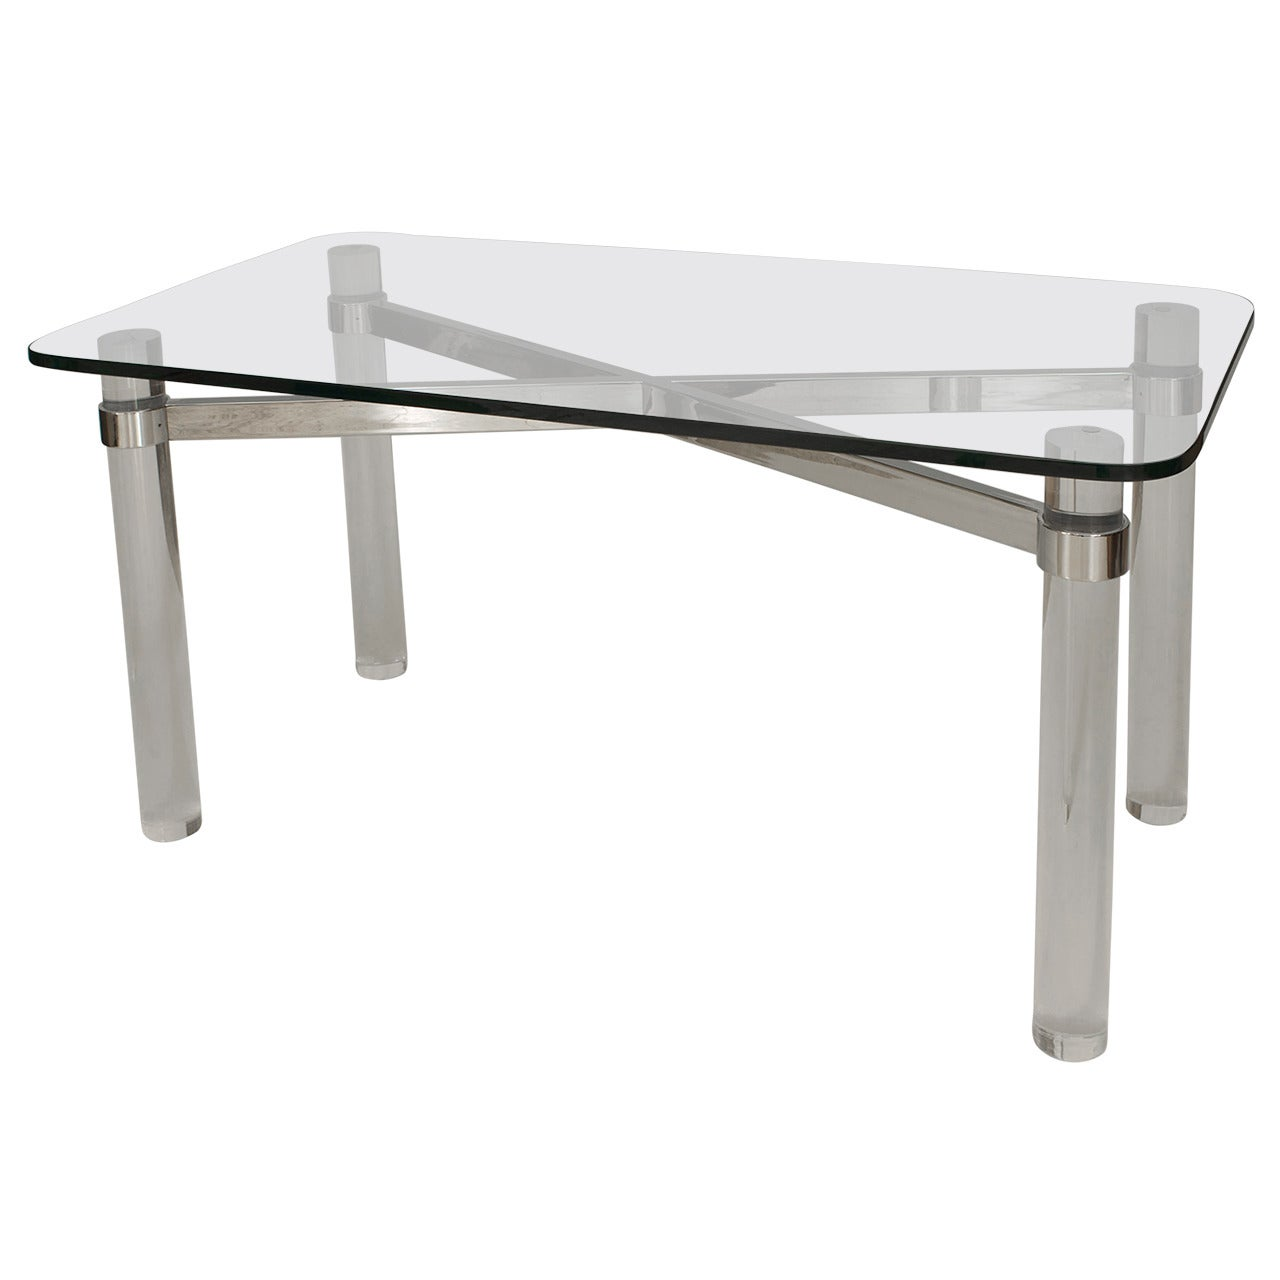 1970's American Pace Collection Glass & Lucite Center Table